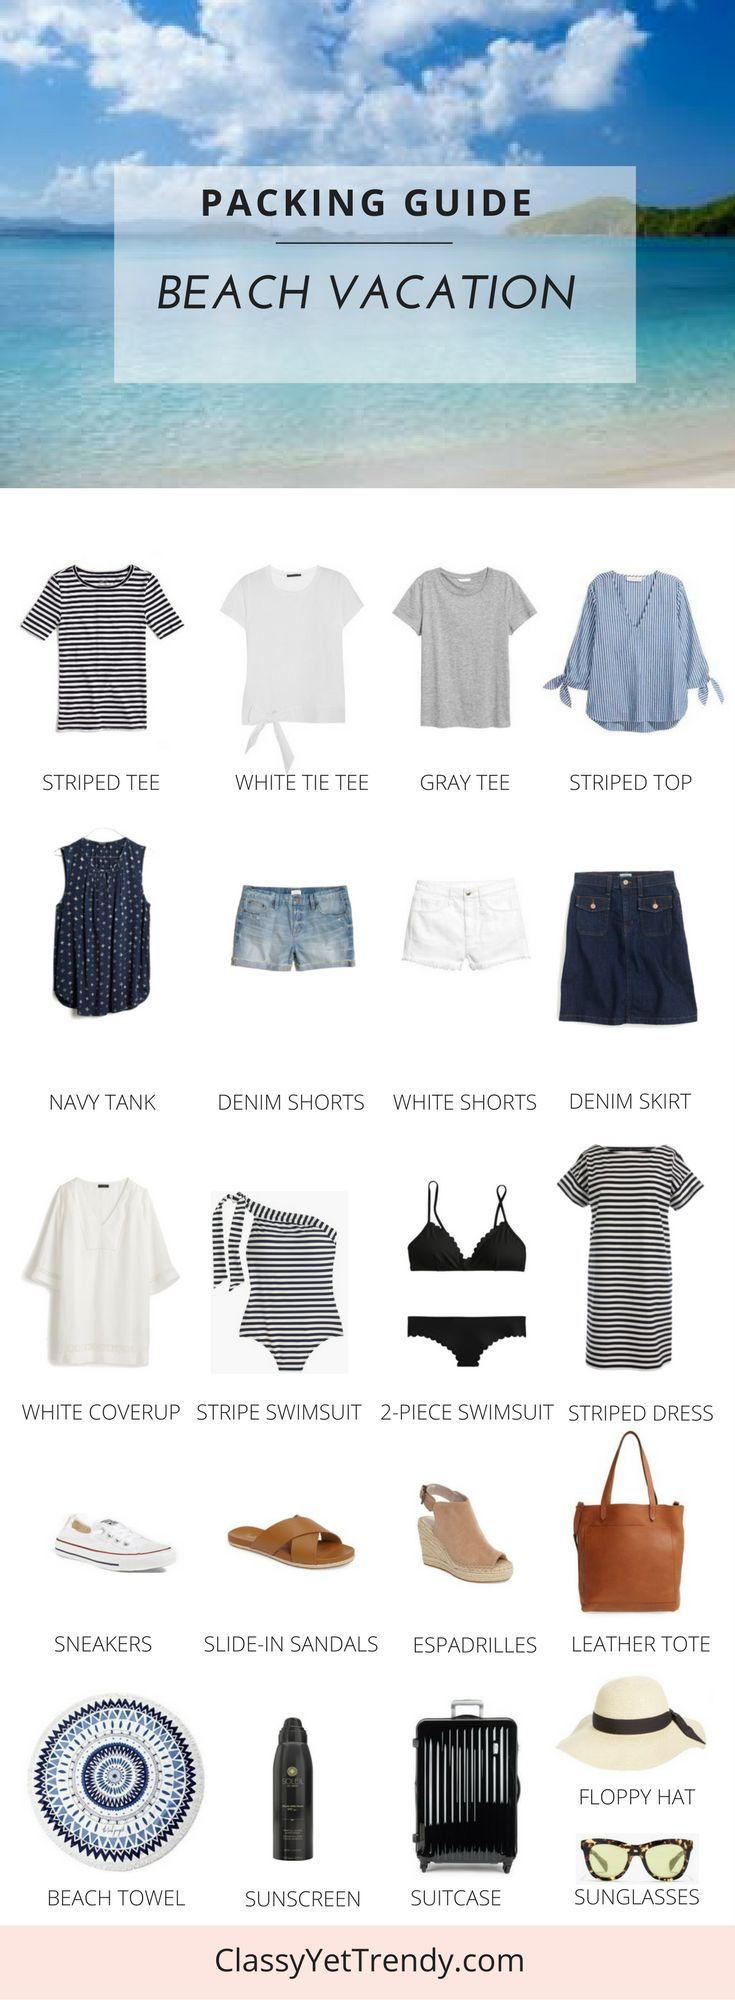 Packing Guide: Spring Break At The Beach - Classy Yet Trendy